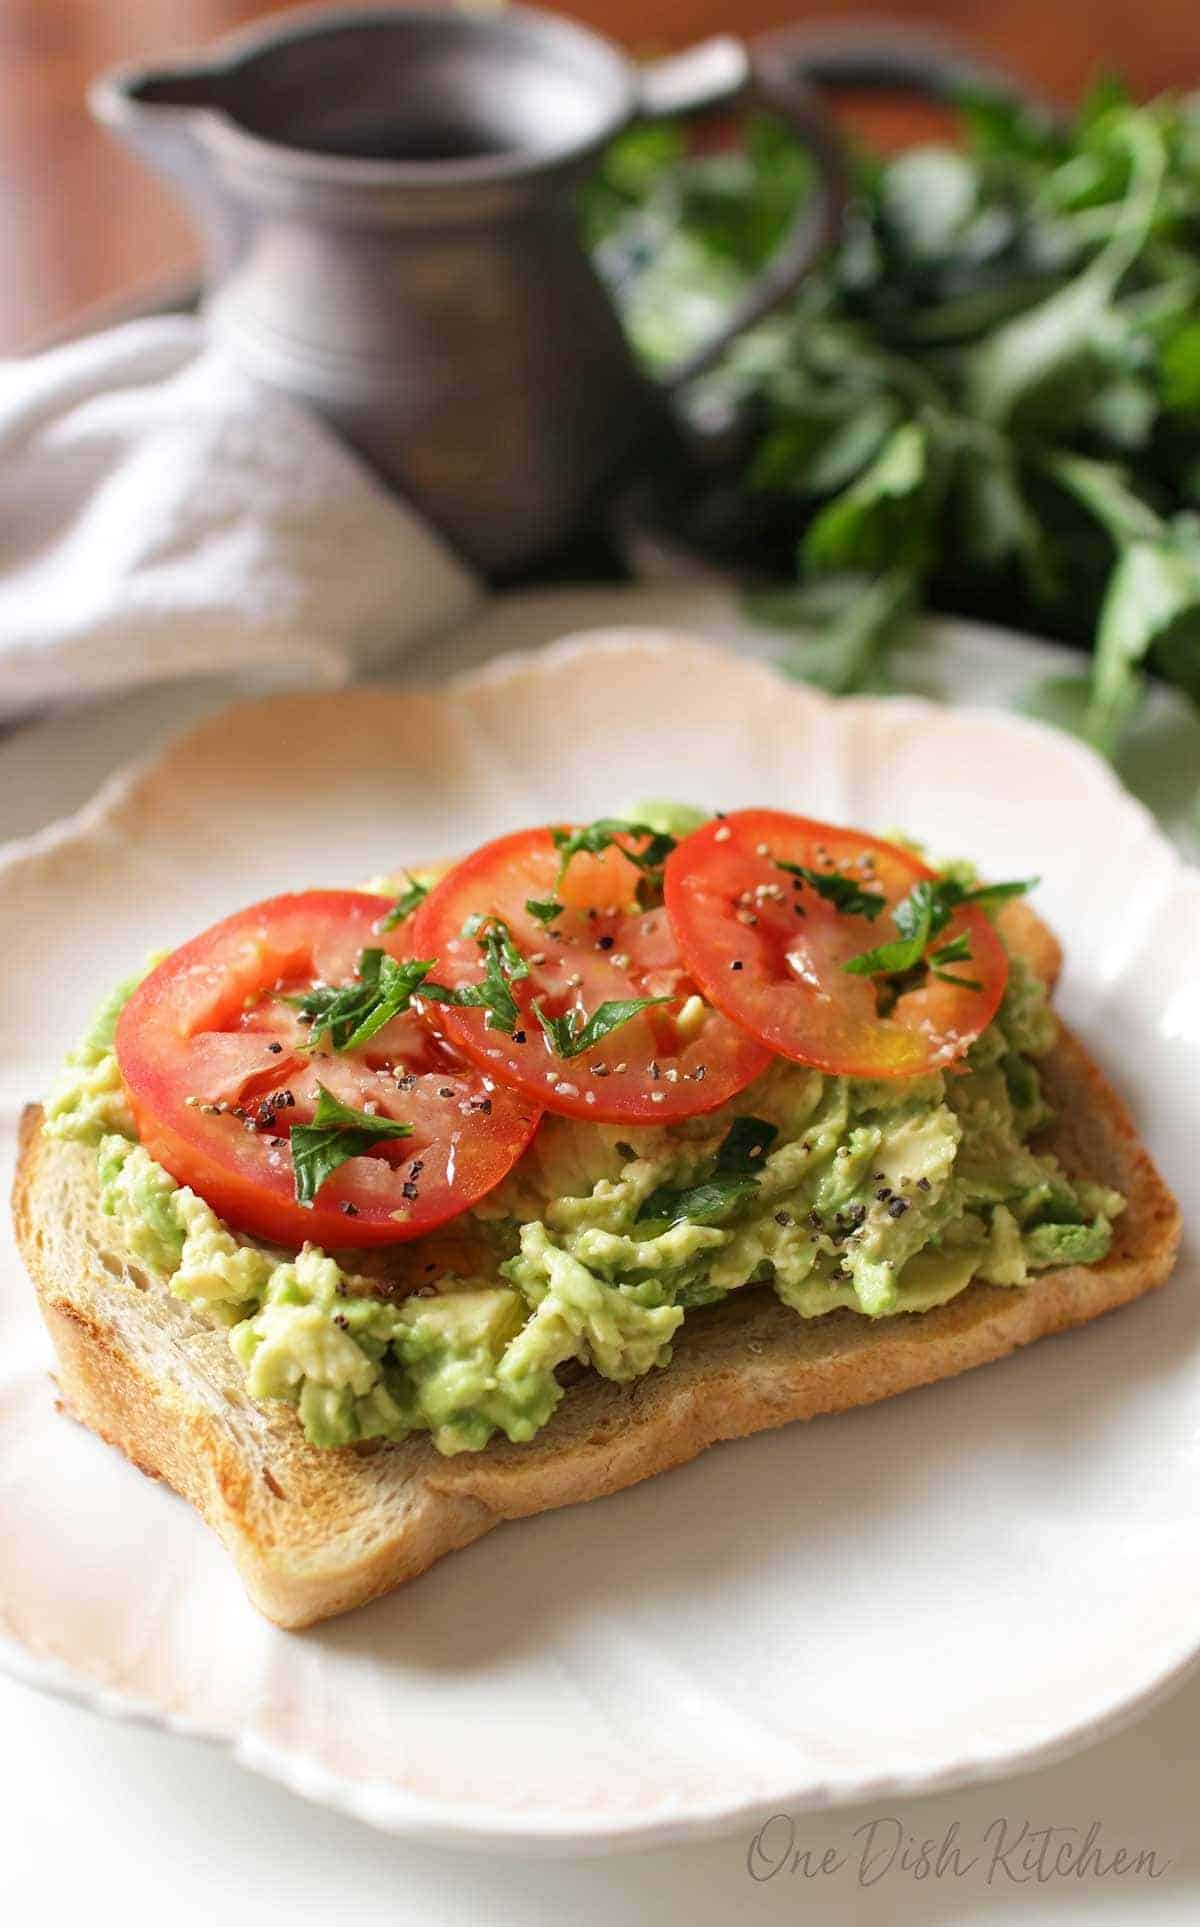 Avocado toast topped with three tomato slices, salt, pepper, and basil on a plate